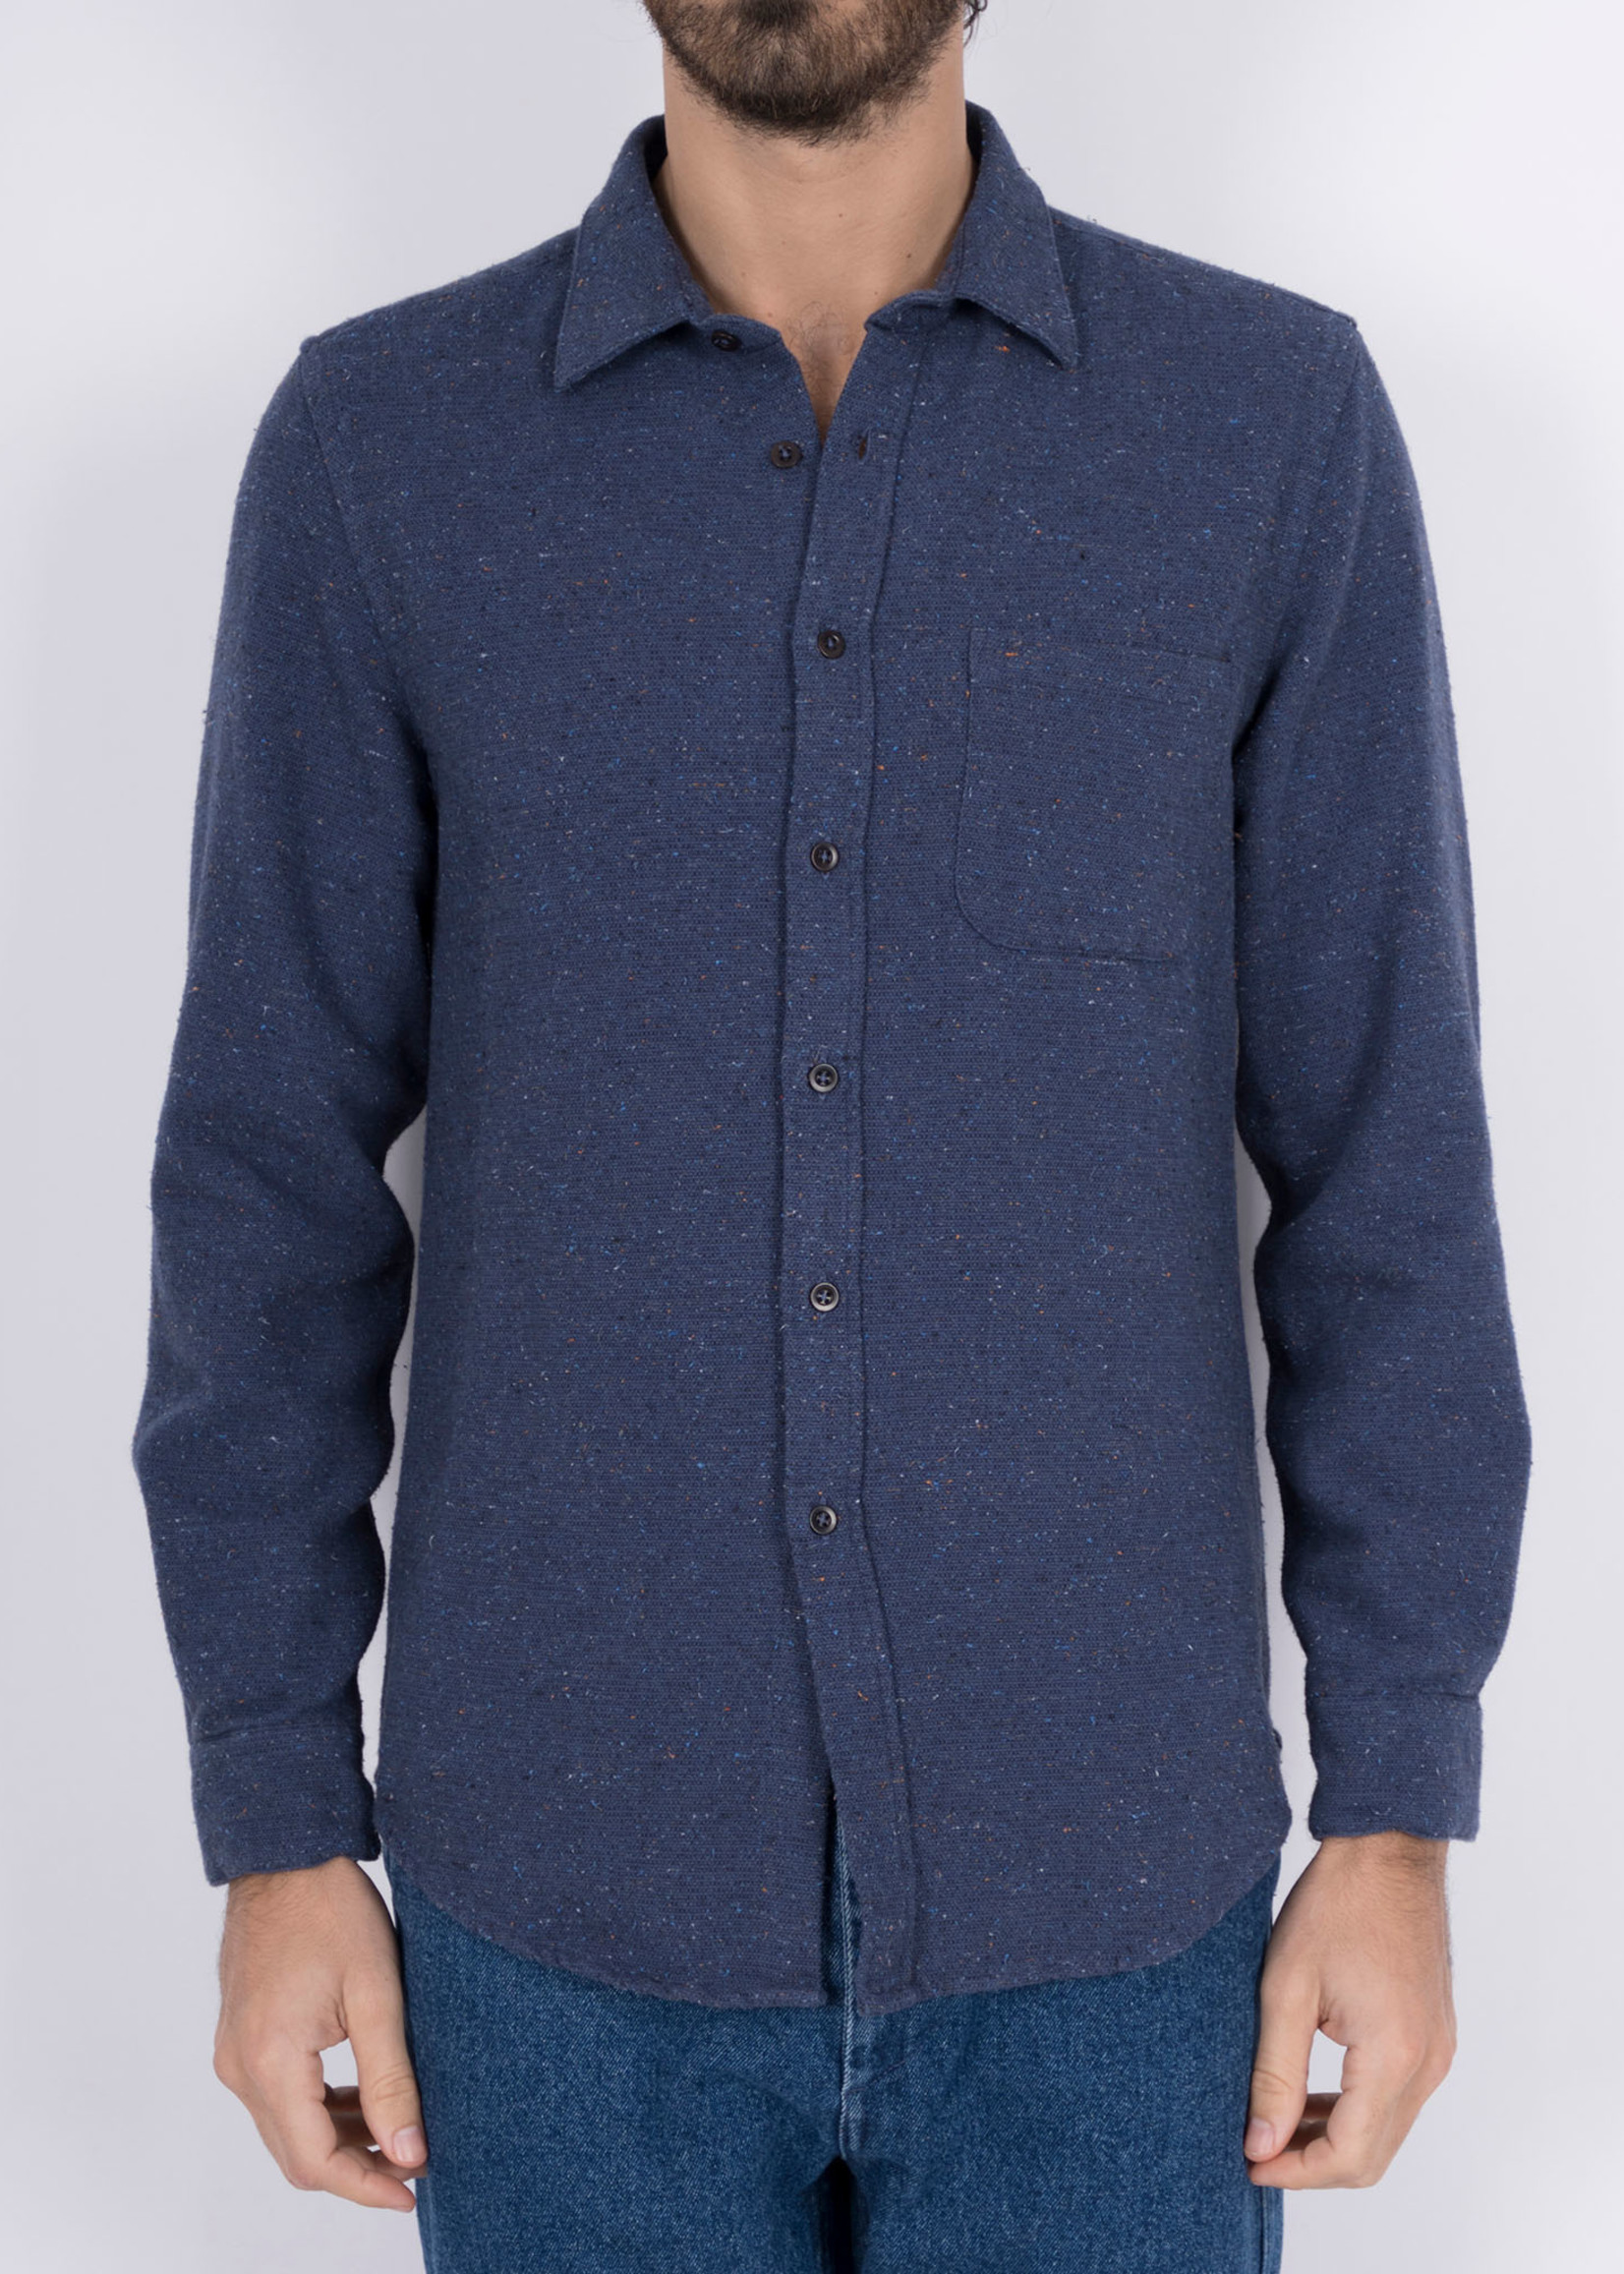 Portuguese Flannel Rude Navy Flecked Cotton Sport Shirt by Portuguese Flannel